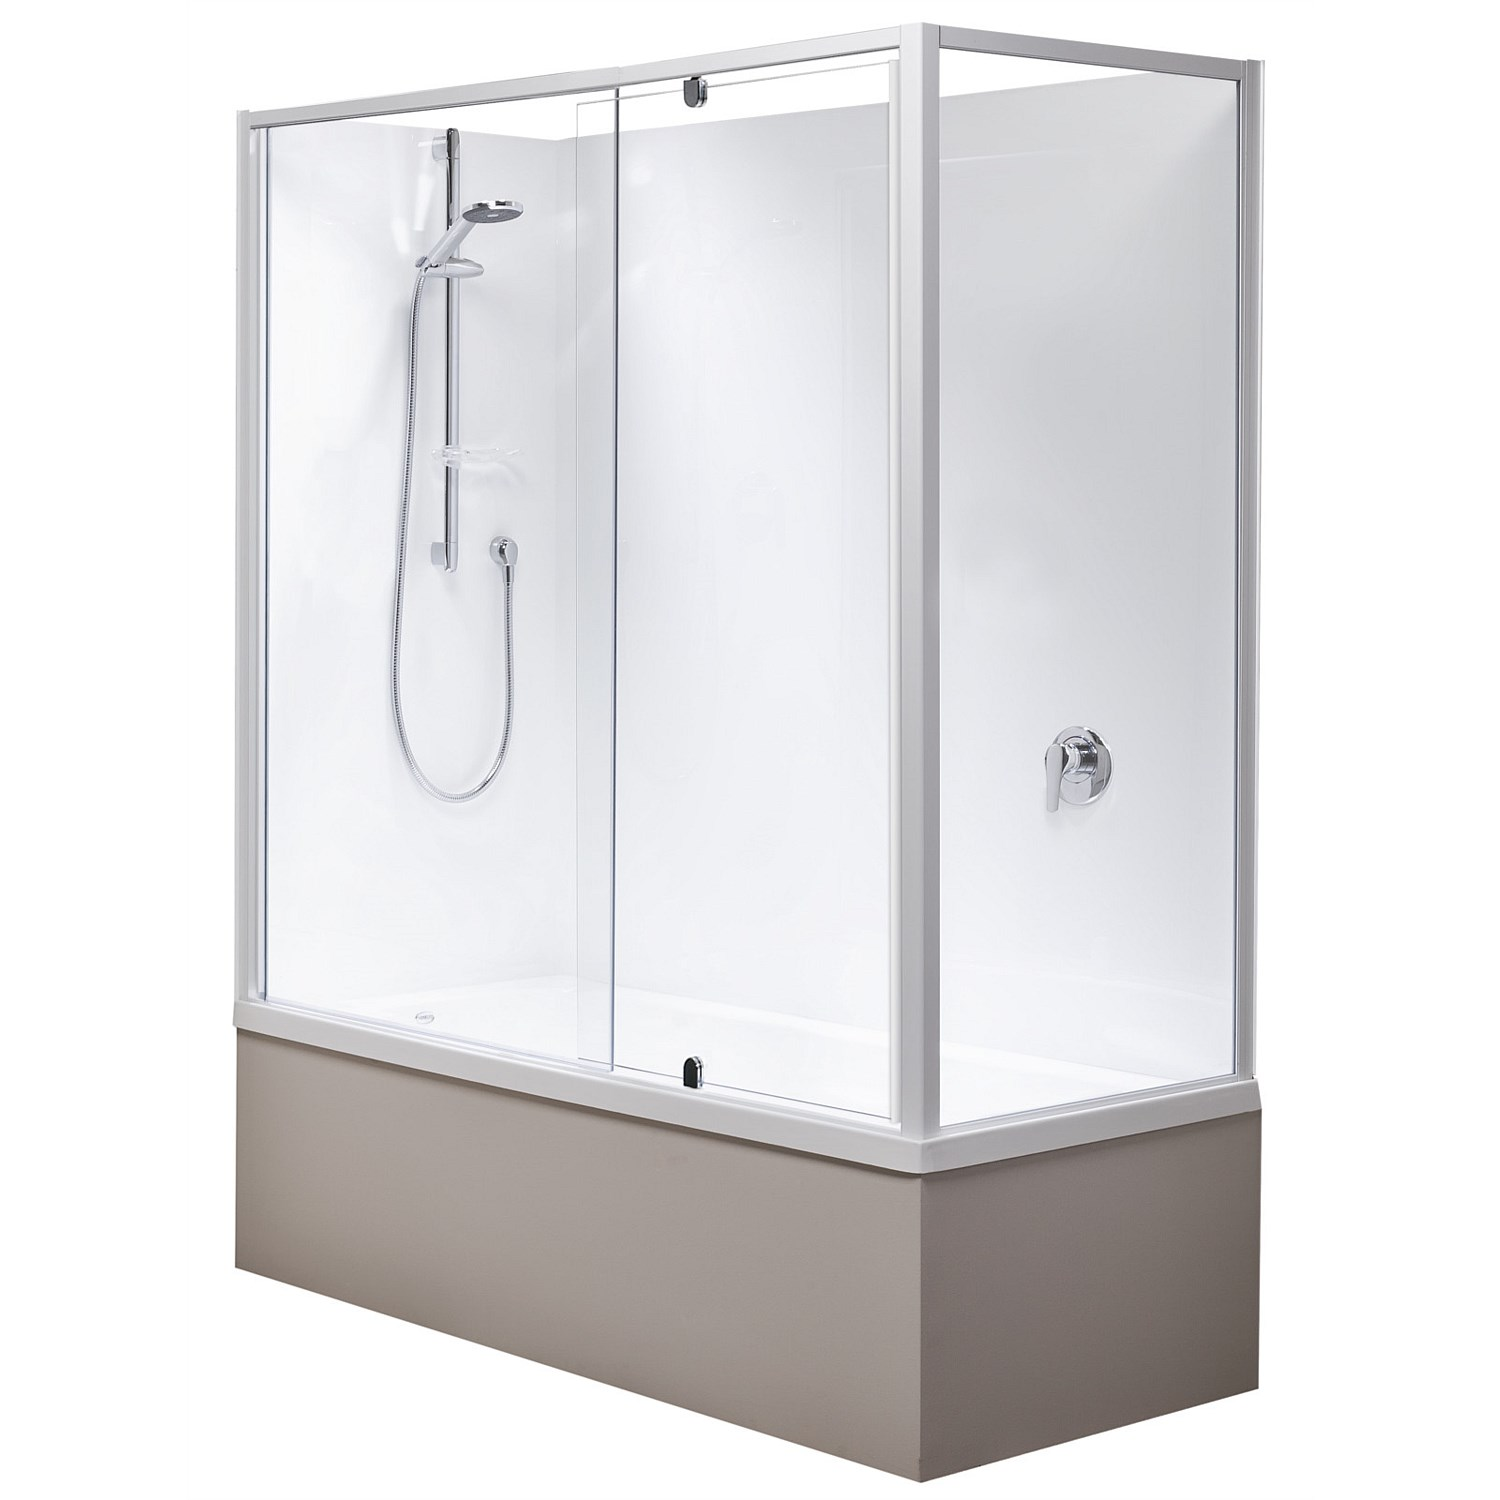 Clearlite Matisse 1655mm 2 Sided Over Bath Shower with Complete Door Set